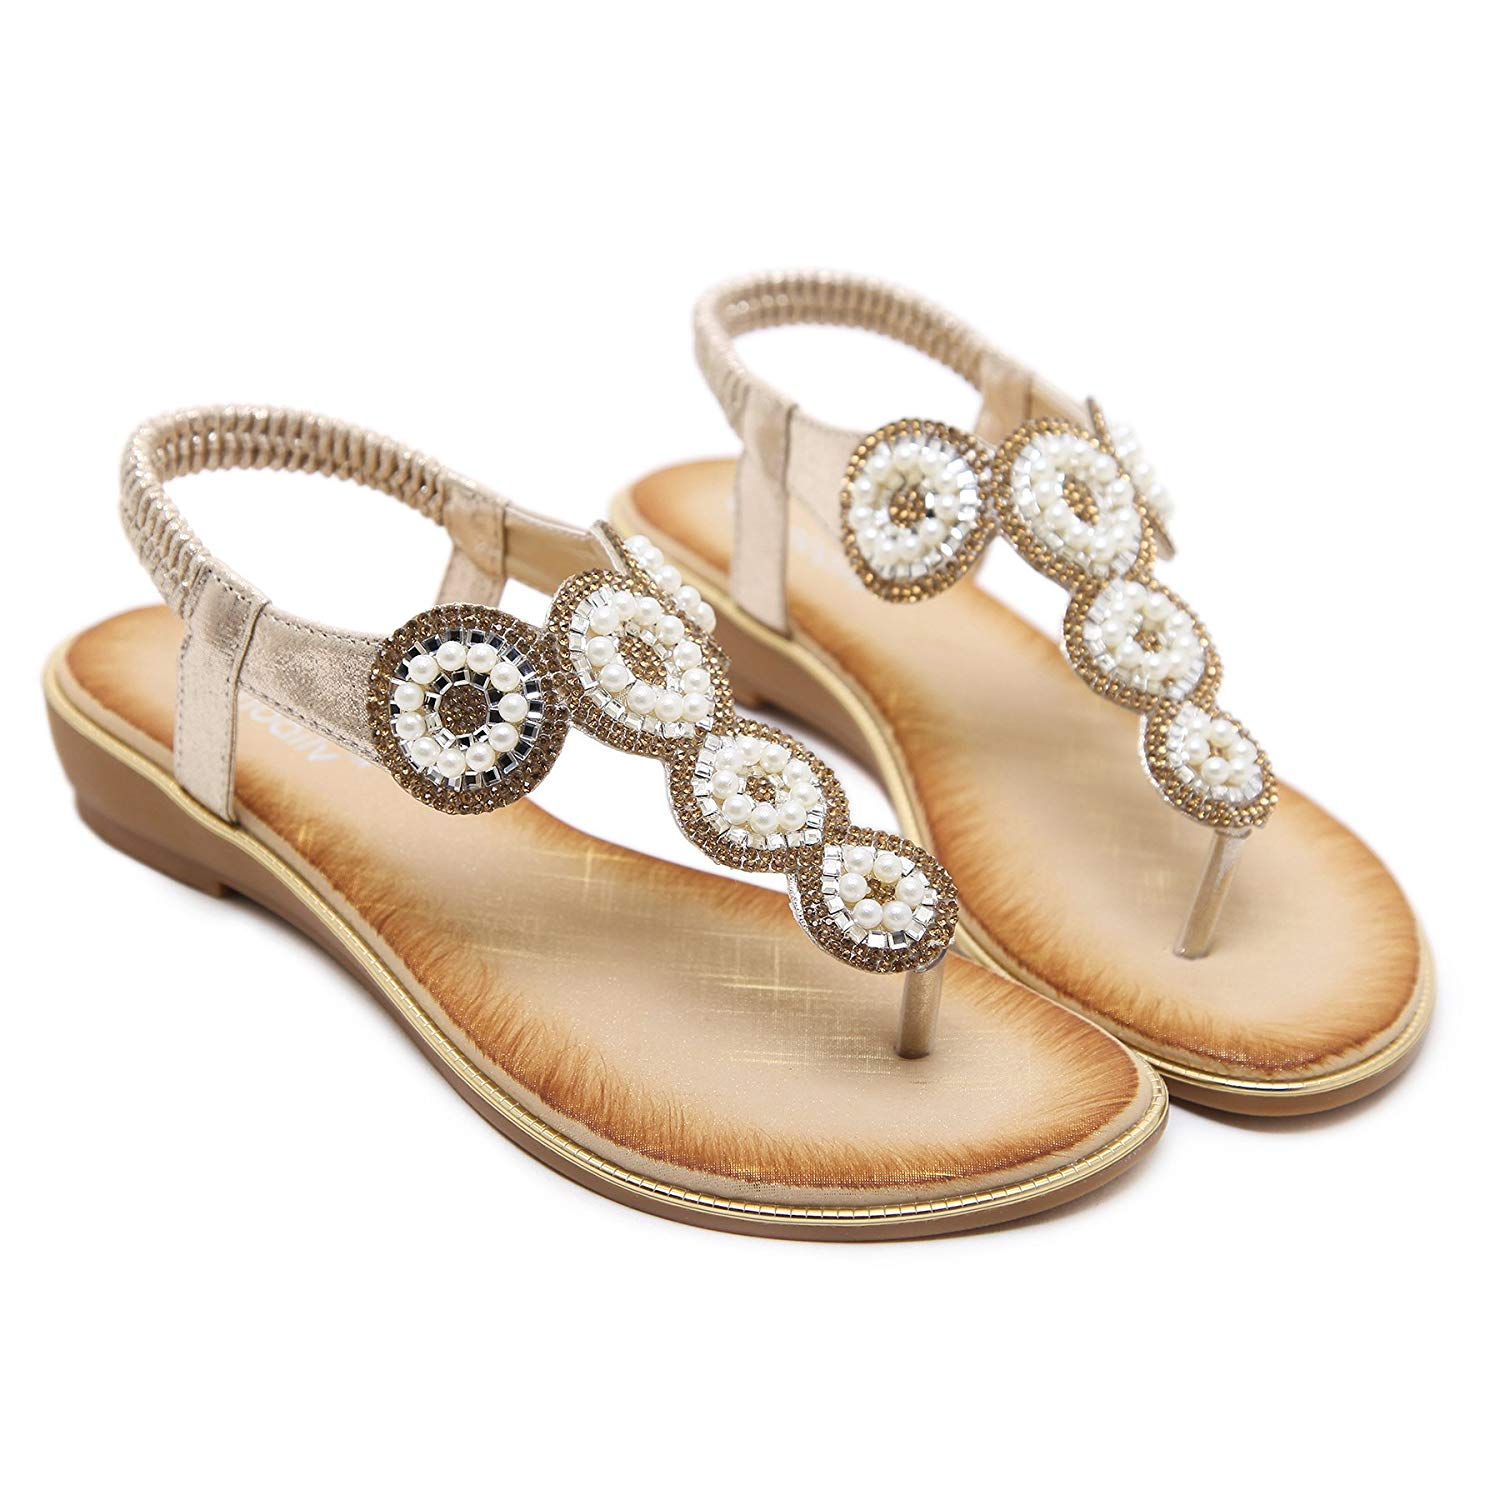 8d7f693ee7de2 Get Quotations · INNICON Women s Gladiator Sparkly Rhinestone Beaded  Wedding Flat Sandals Summer Beach Slingback Thong Shoes